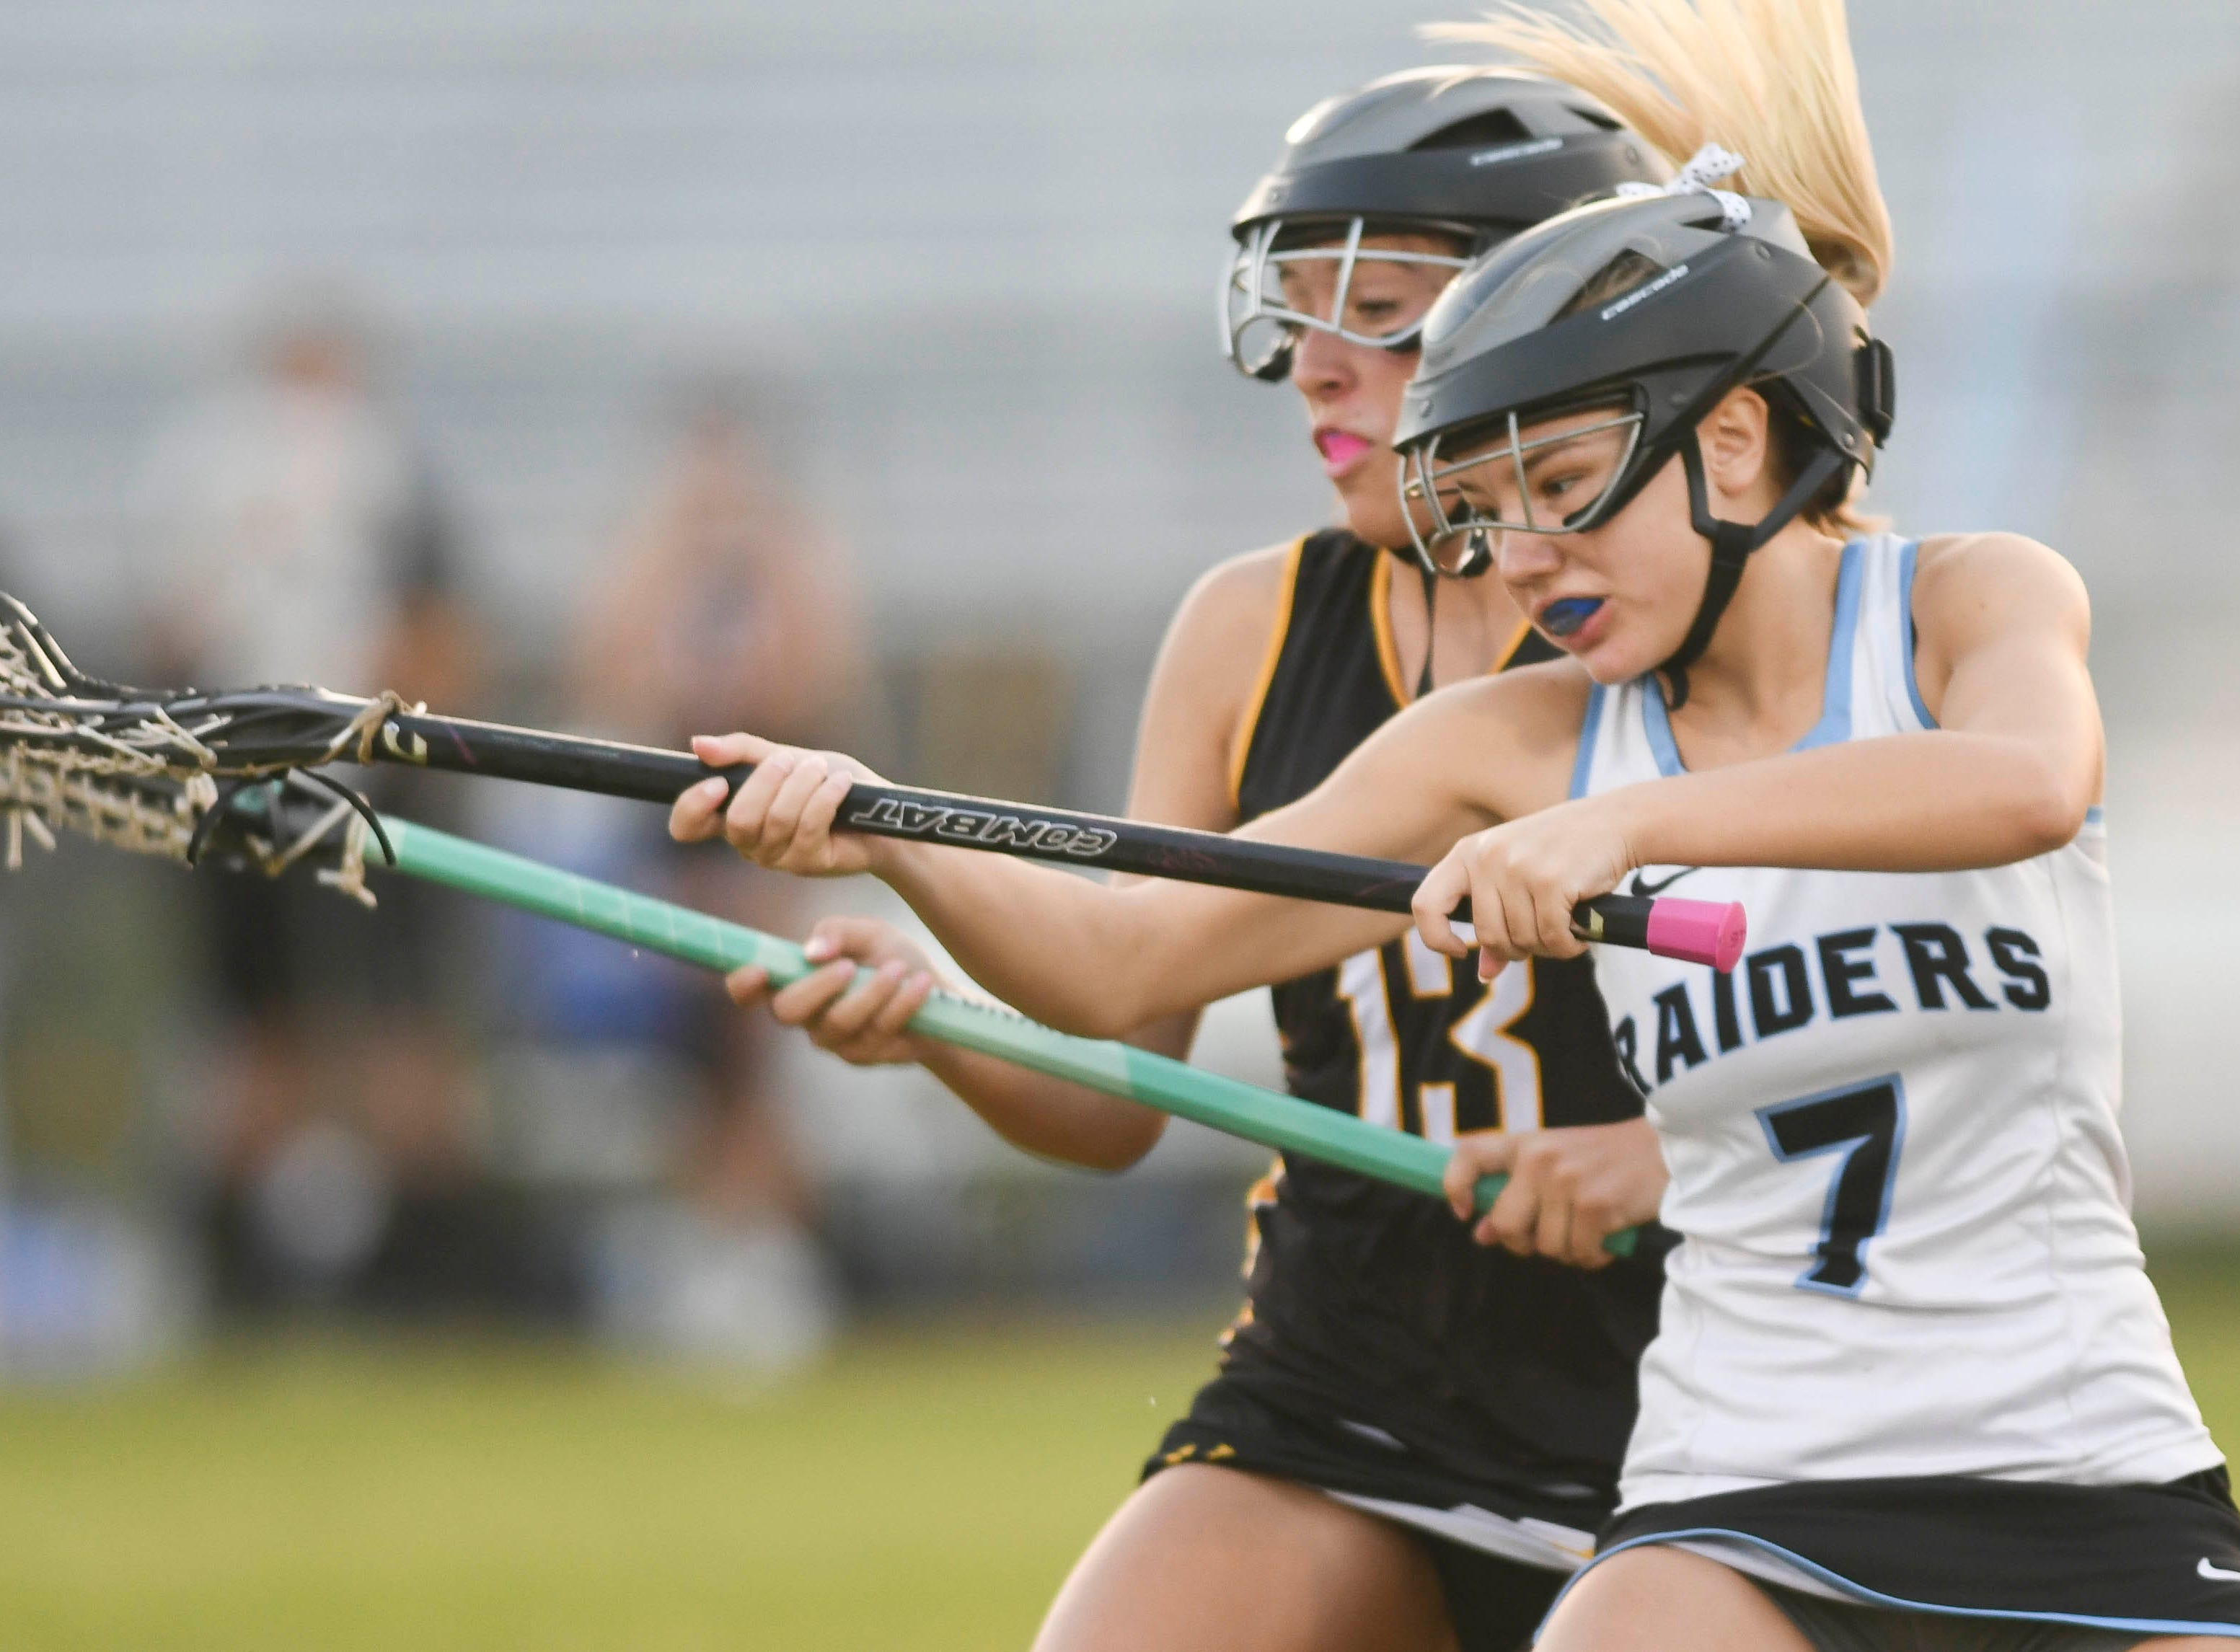 Hannah Wheat of Merritt Island and Ledger Hicks of Rockledge battle for the ball during Tuesday's game.